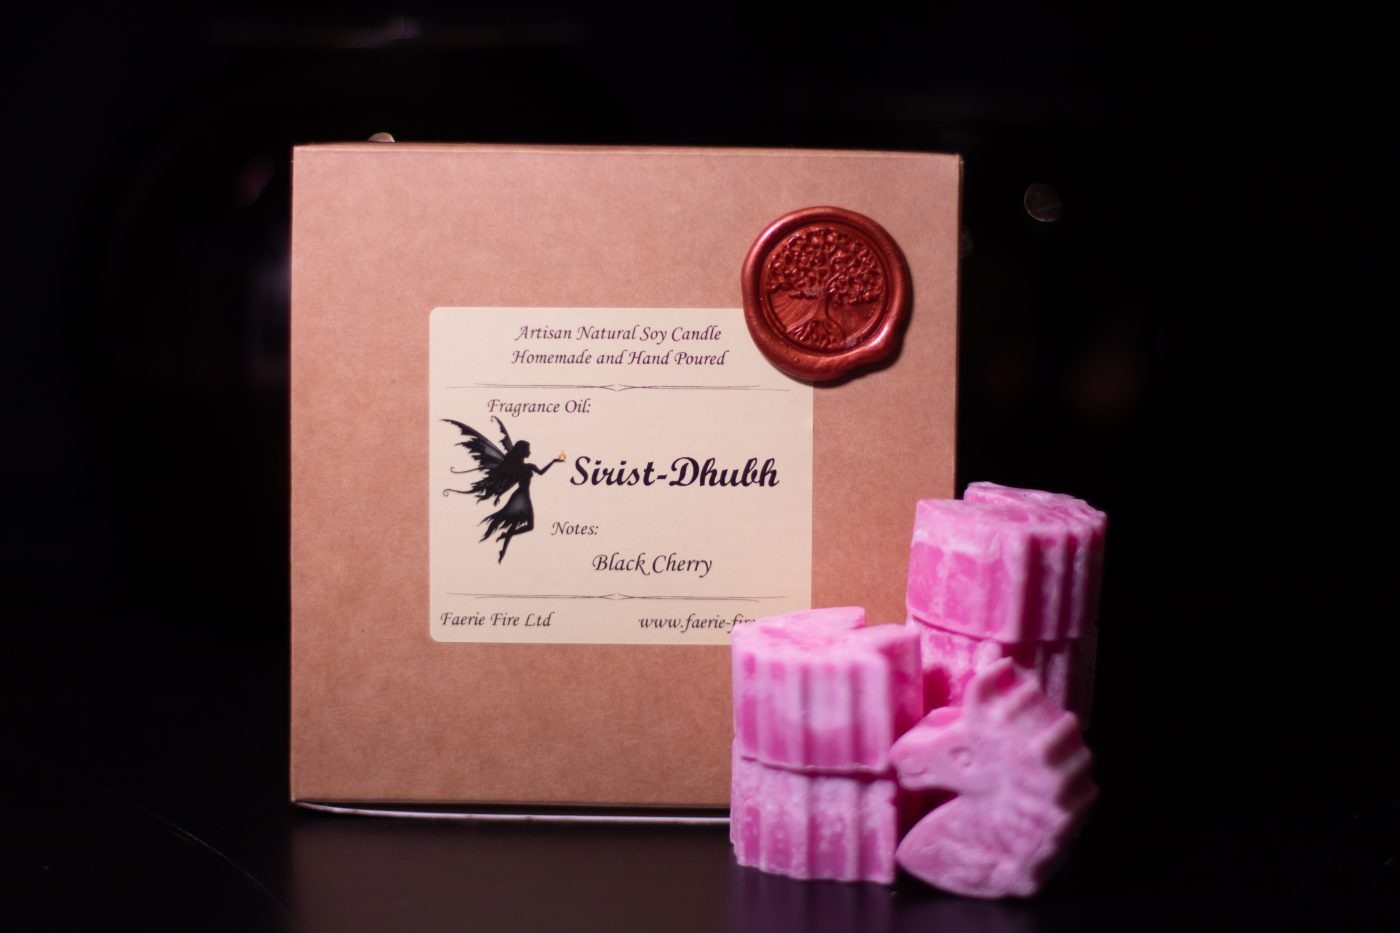 Sirist Dhubh Soy Wax Melts scaled